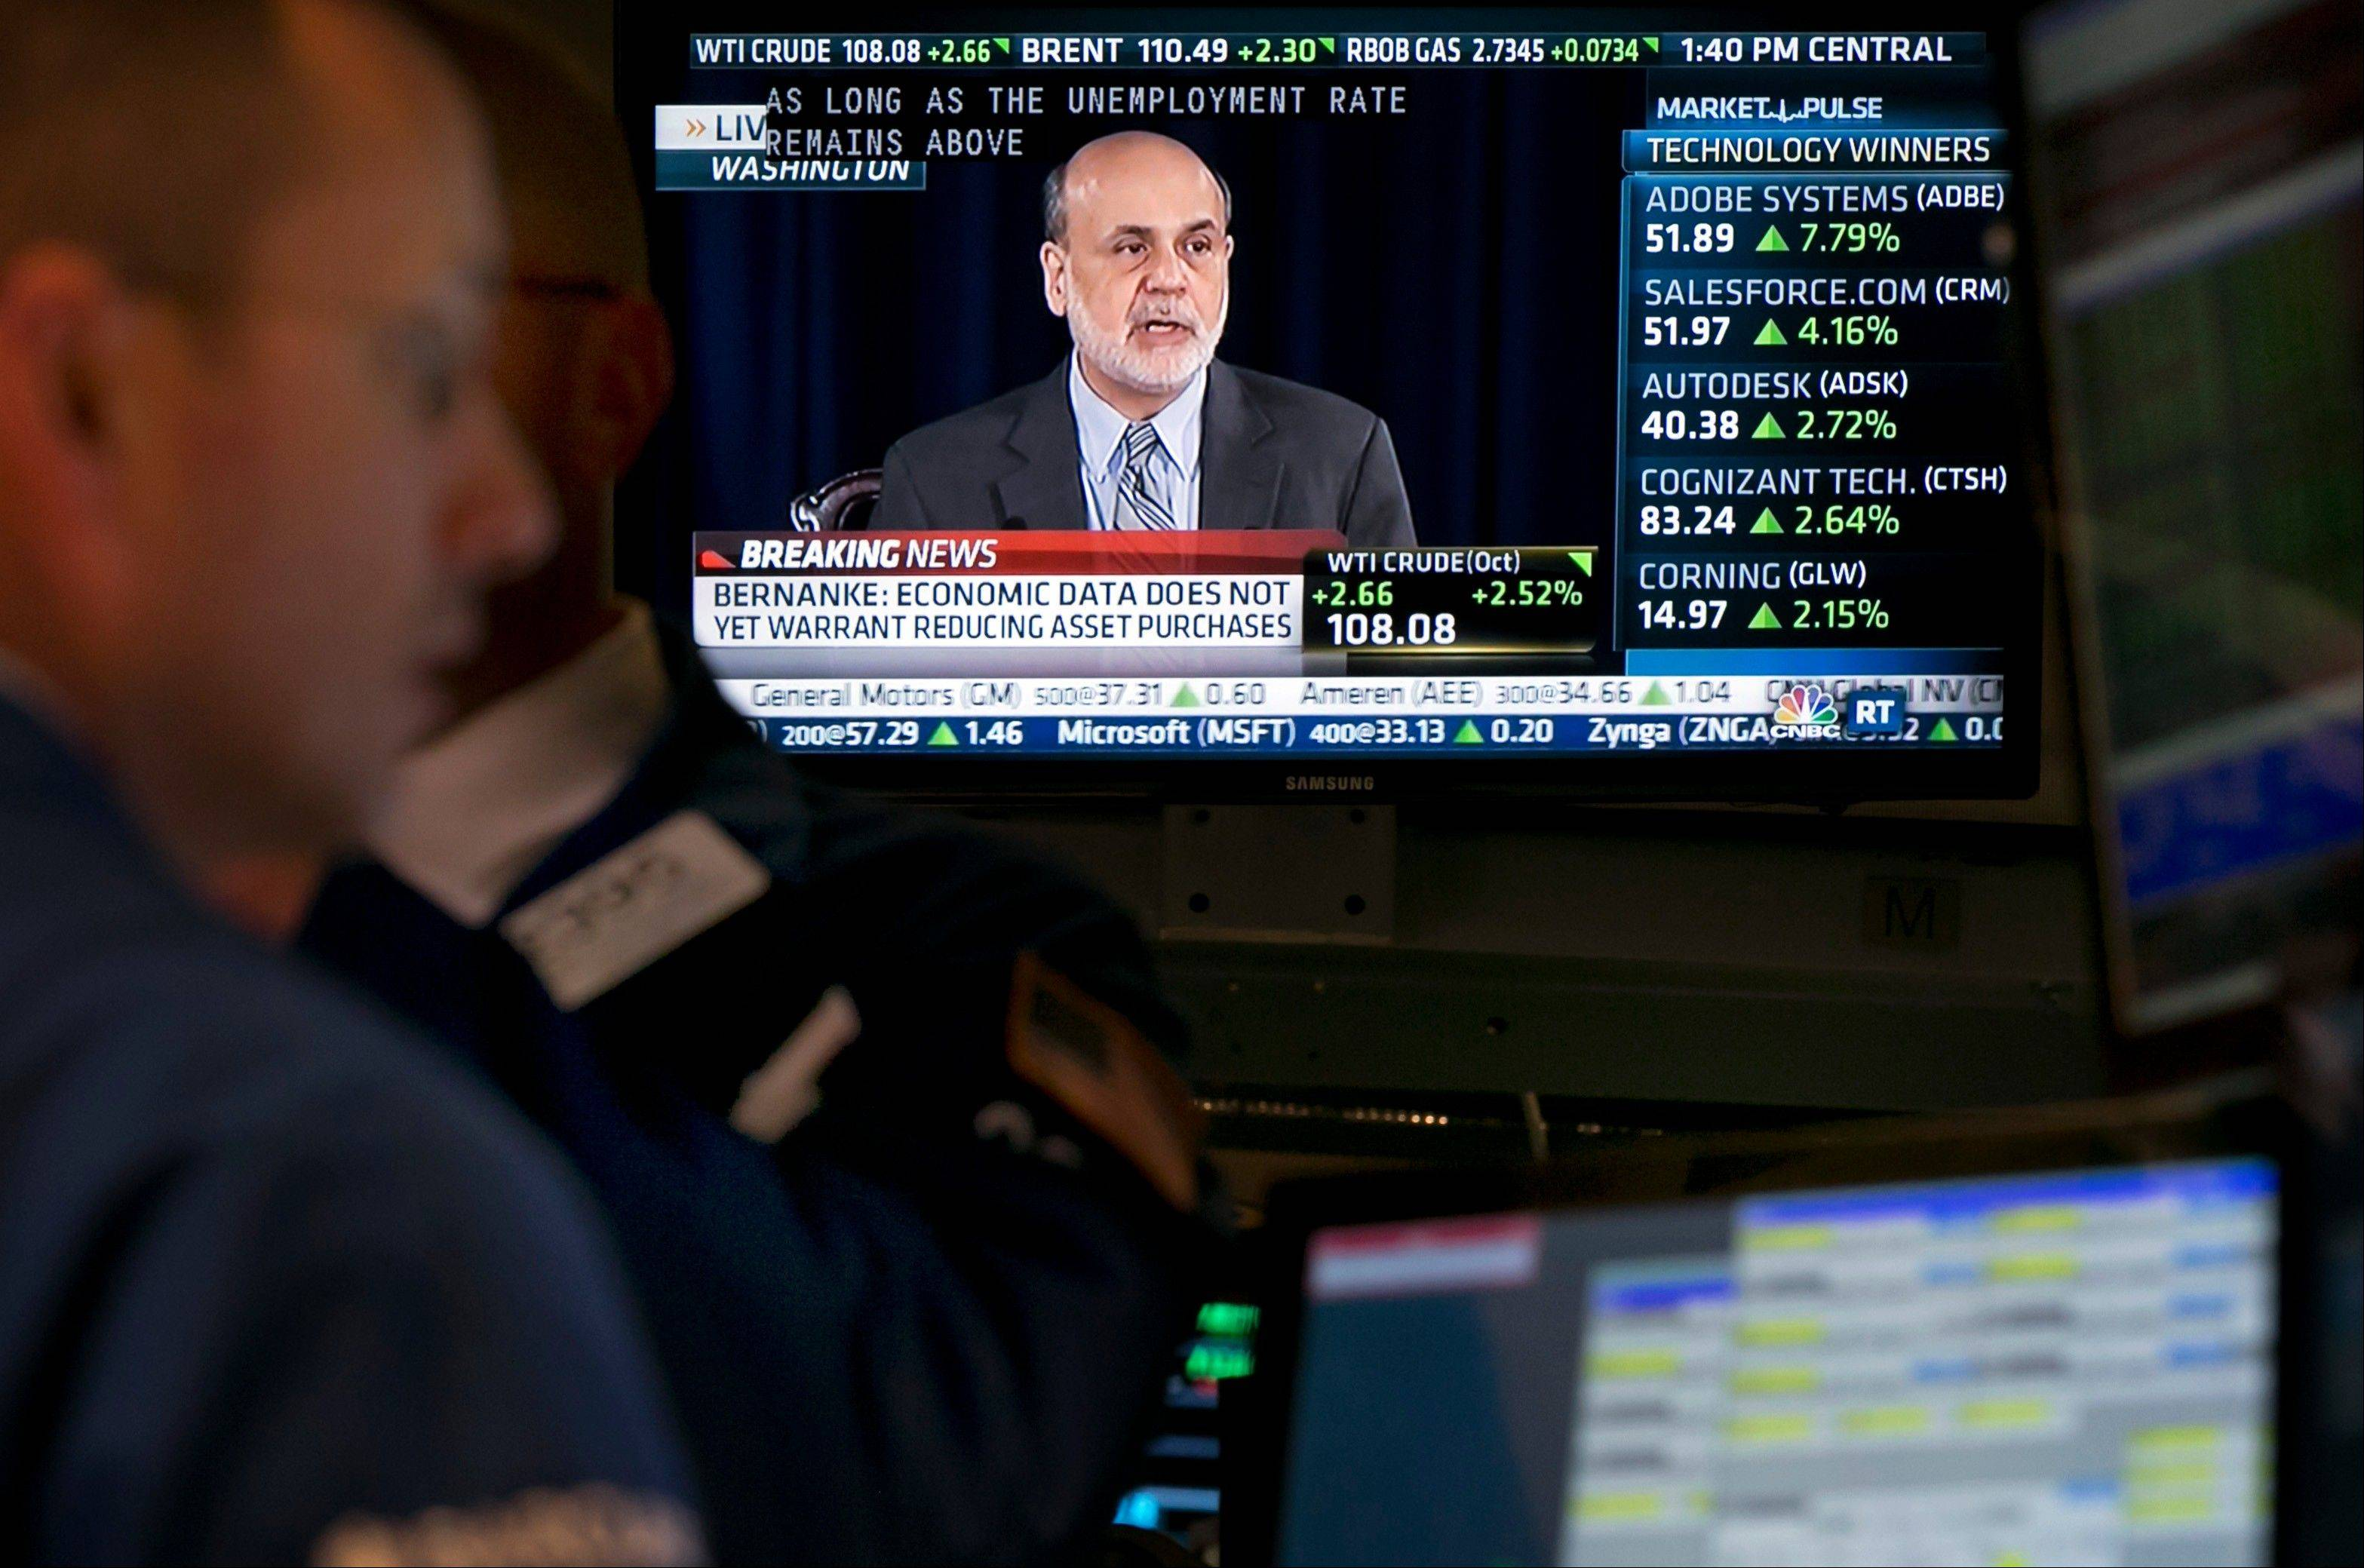 The news conference of Fed Chairman Ben Bernanke appears on a television screen at a post on the floor of the New York Stock Exchange Wednesday. The Federal Reserve decided against reducing its stimulus for the U.S. economy, saying it will continue to buy $85 billion a month in bonds because it thinks the economy still needs the support.